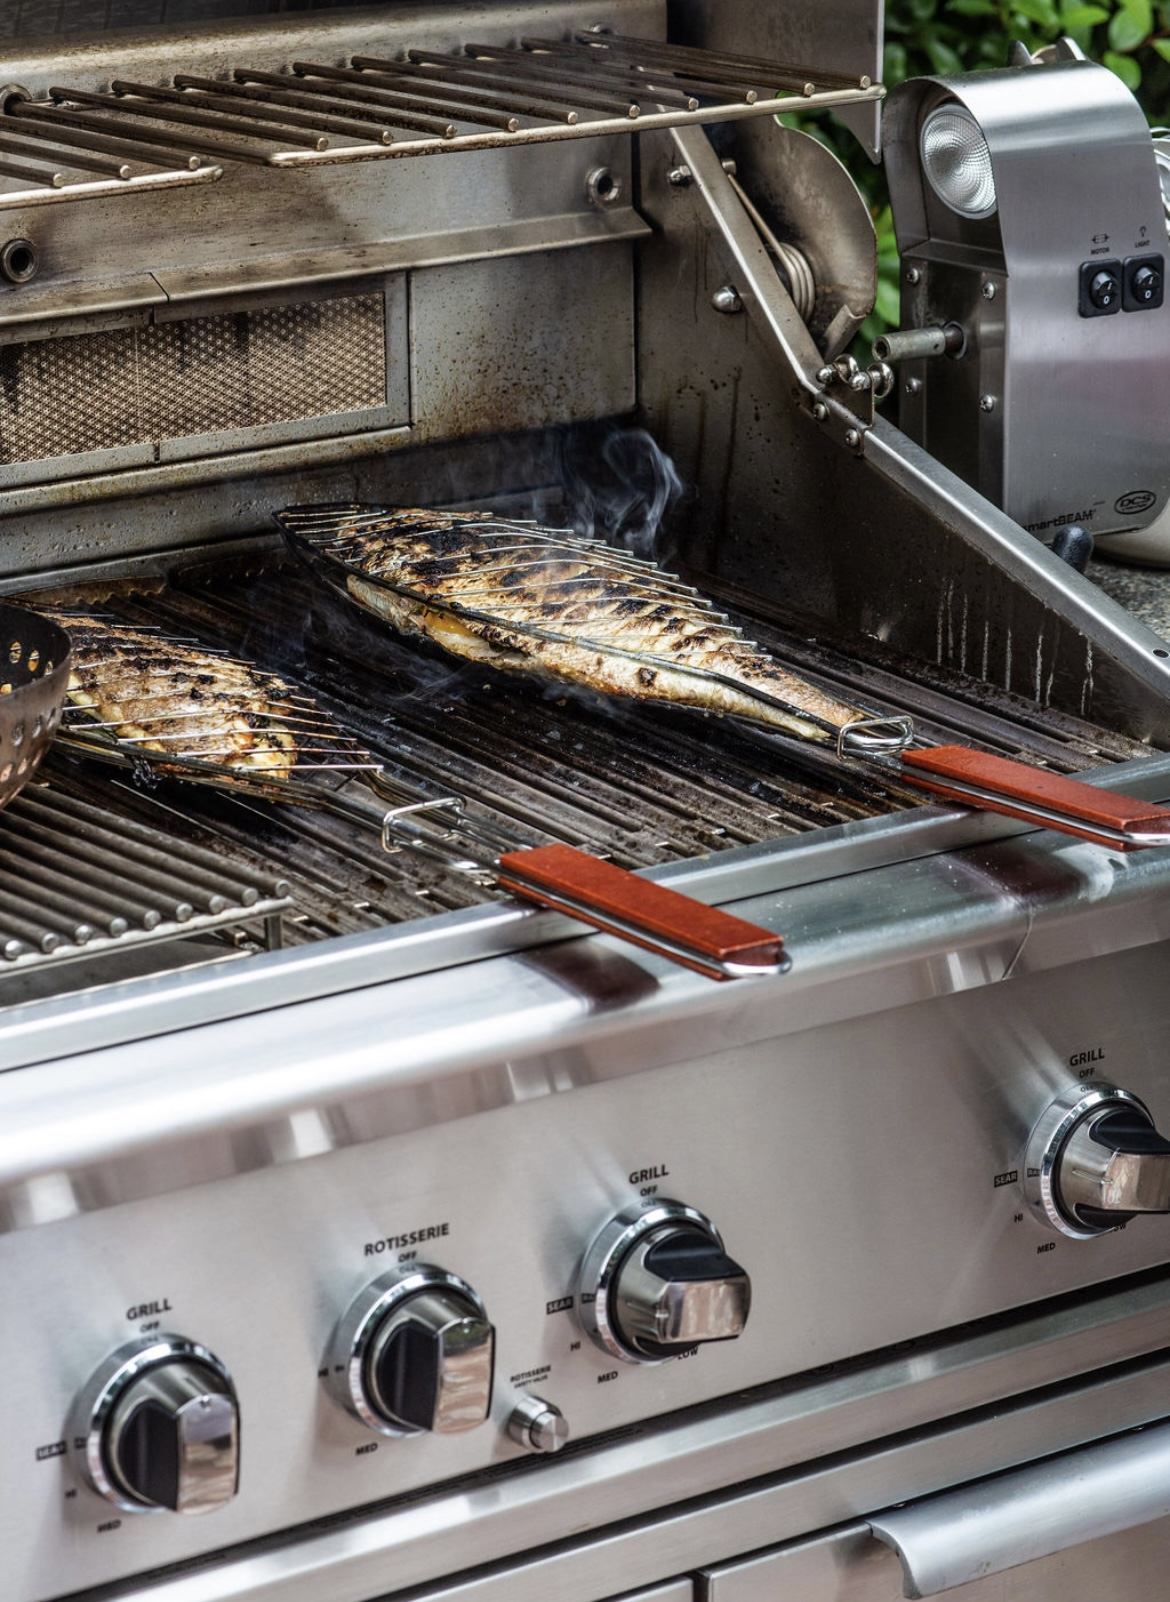 Grilled Fish and Garlic Sauce